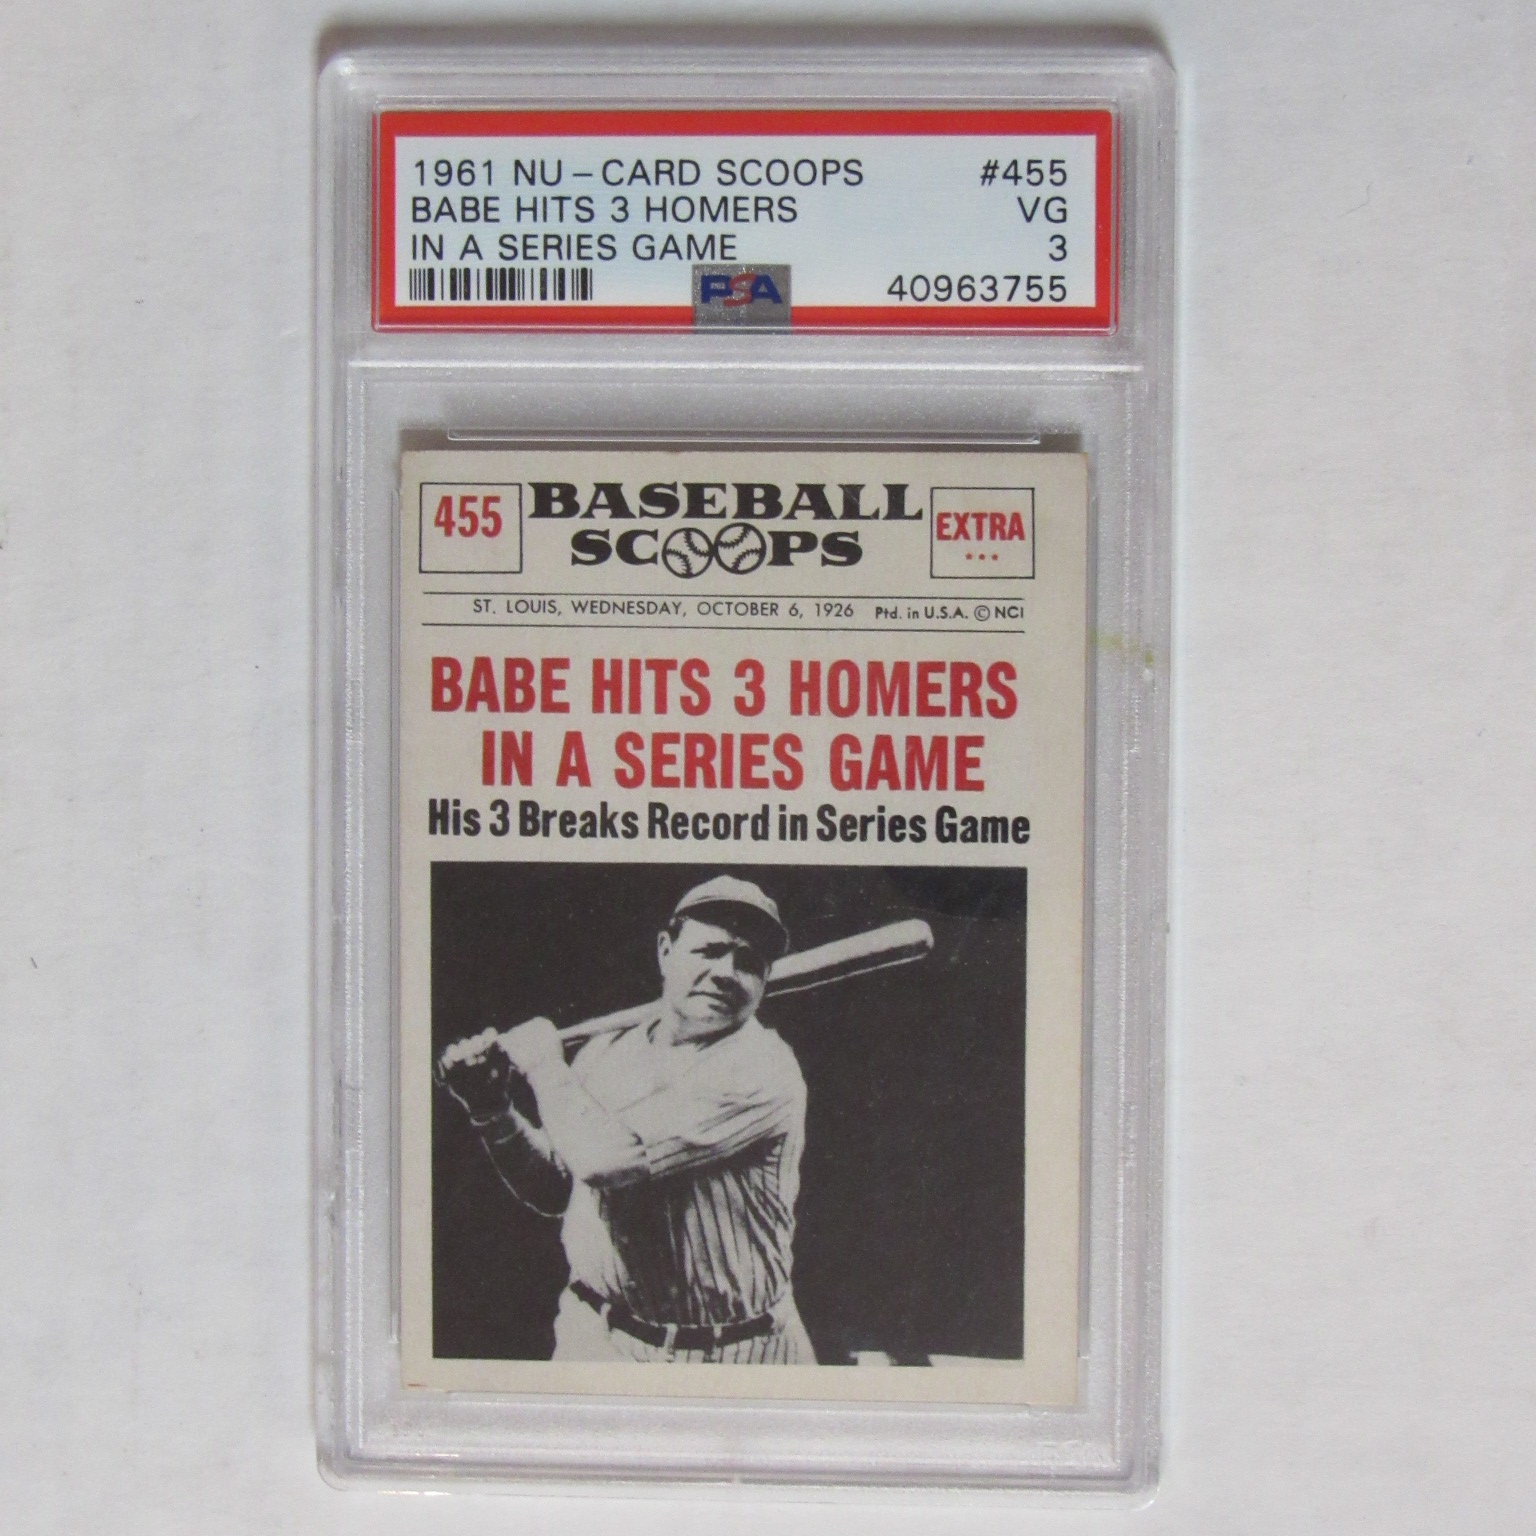 1961 Nu Card Scoops 455 Babe Ruth 3 Homers Graded Psa 3 Vg